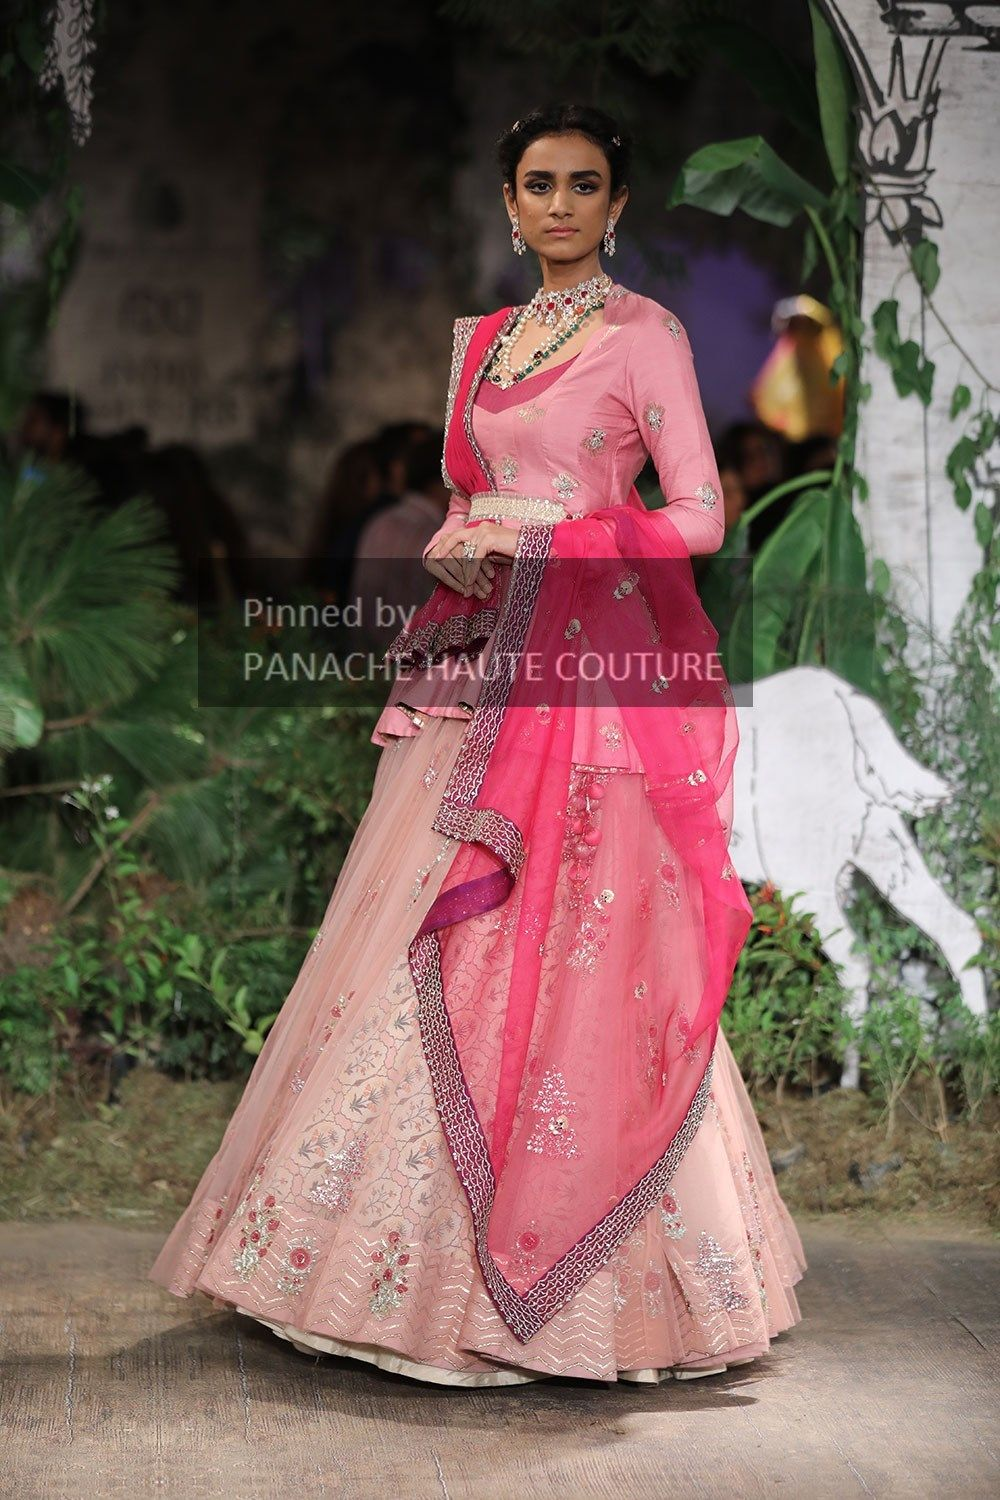 Pin by Krupa Howlett on Indian Bridal and Wedding Guest Styles ...